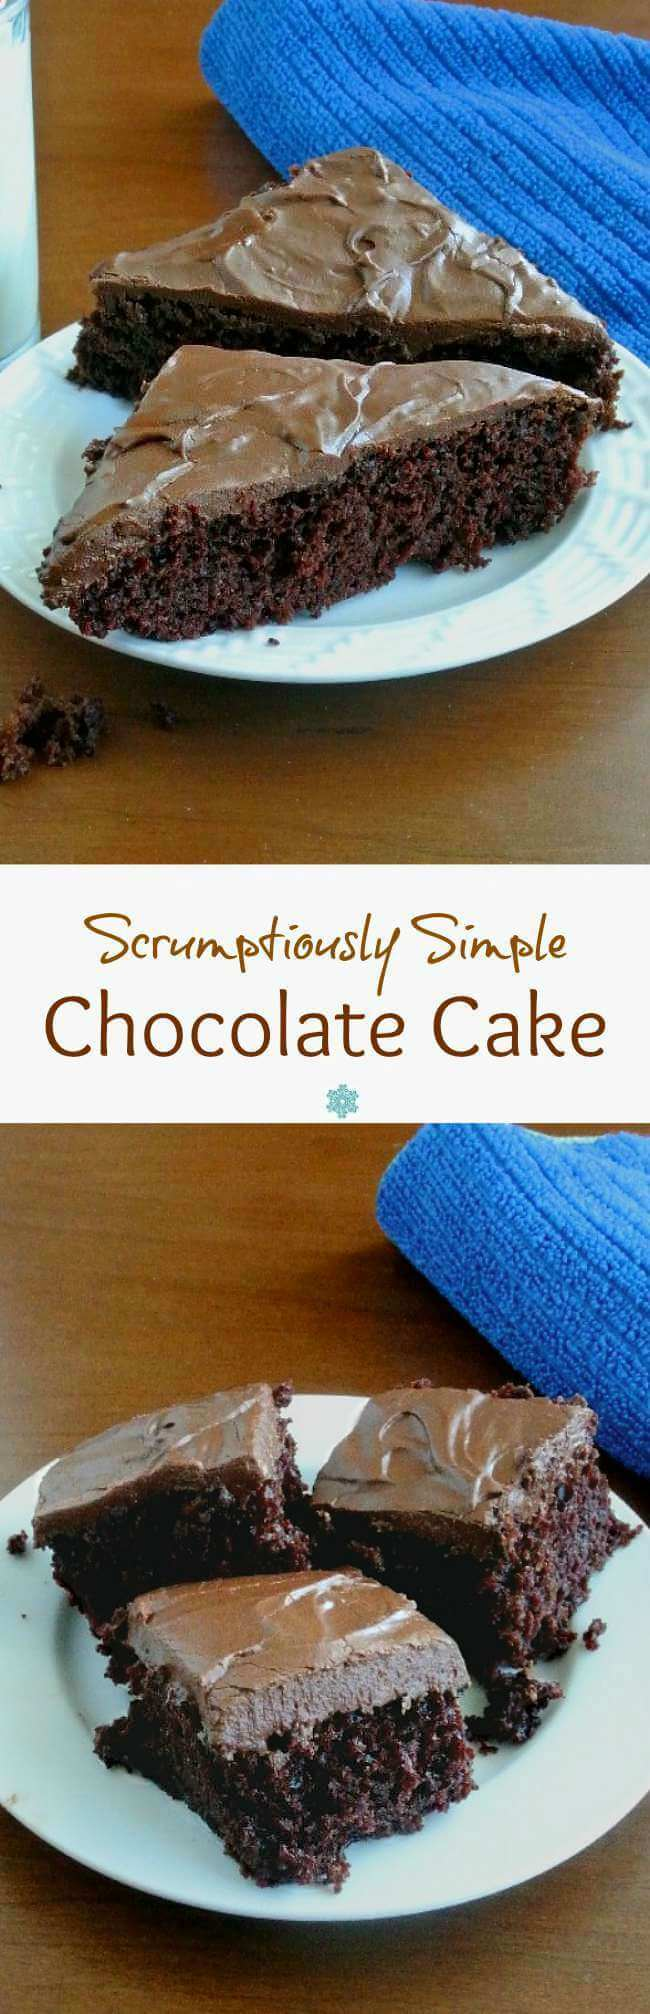 Simple Chocolate Cake says it all. Bake in a 9